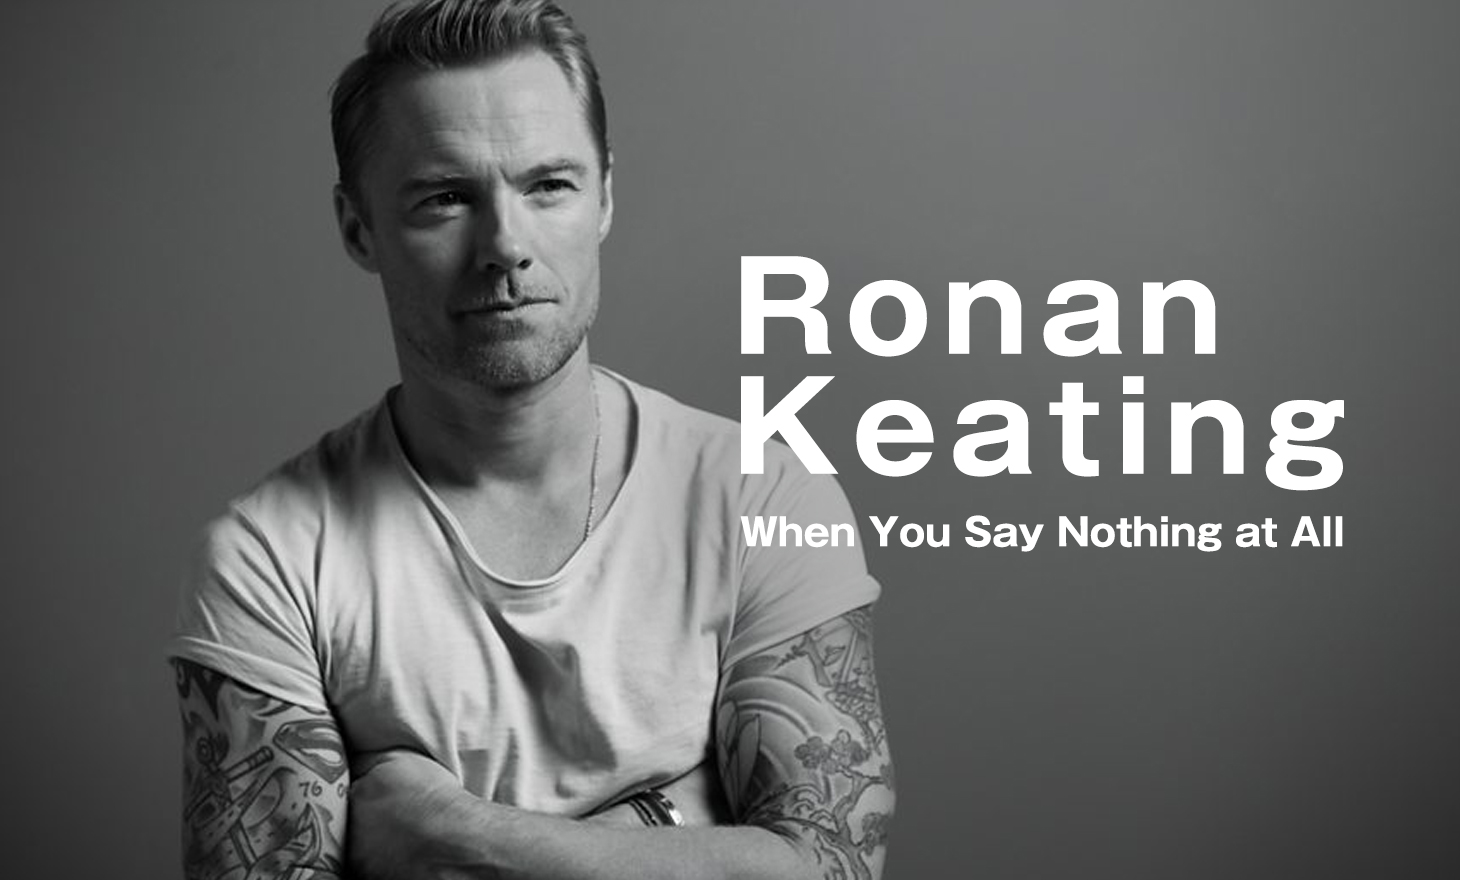 Ronan Keating : When You Say Nothing at All